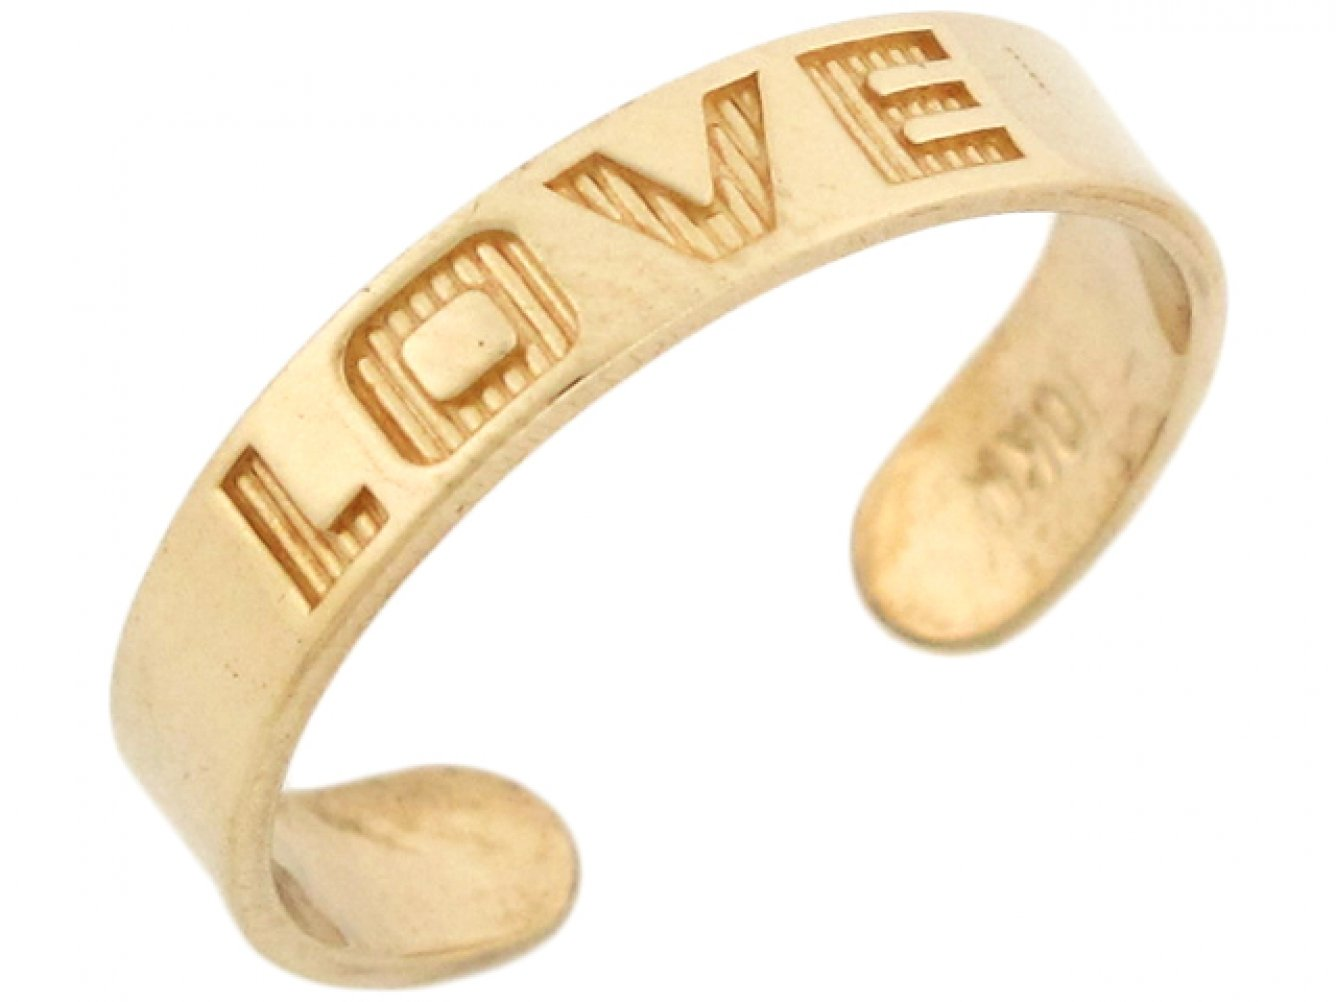 14k Solid Yellow Gold Love Toe Ring by Jewelry Liquidation (Image #2)